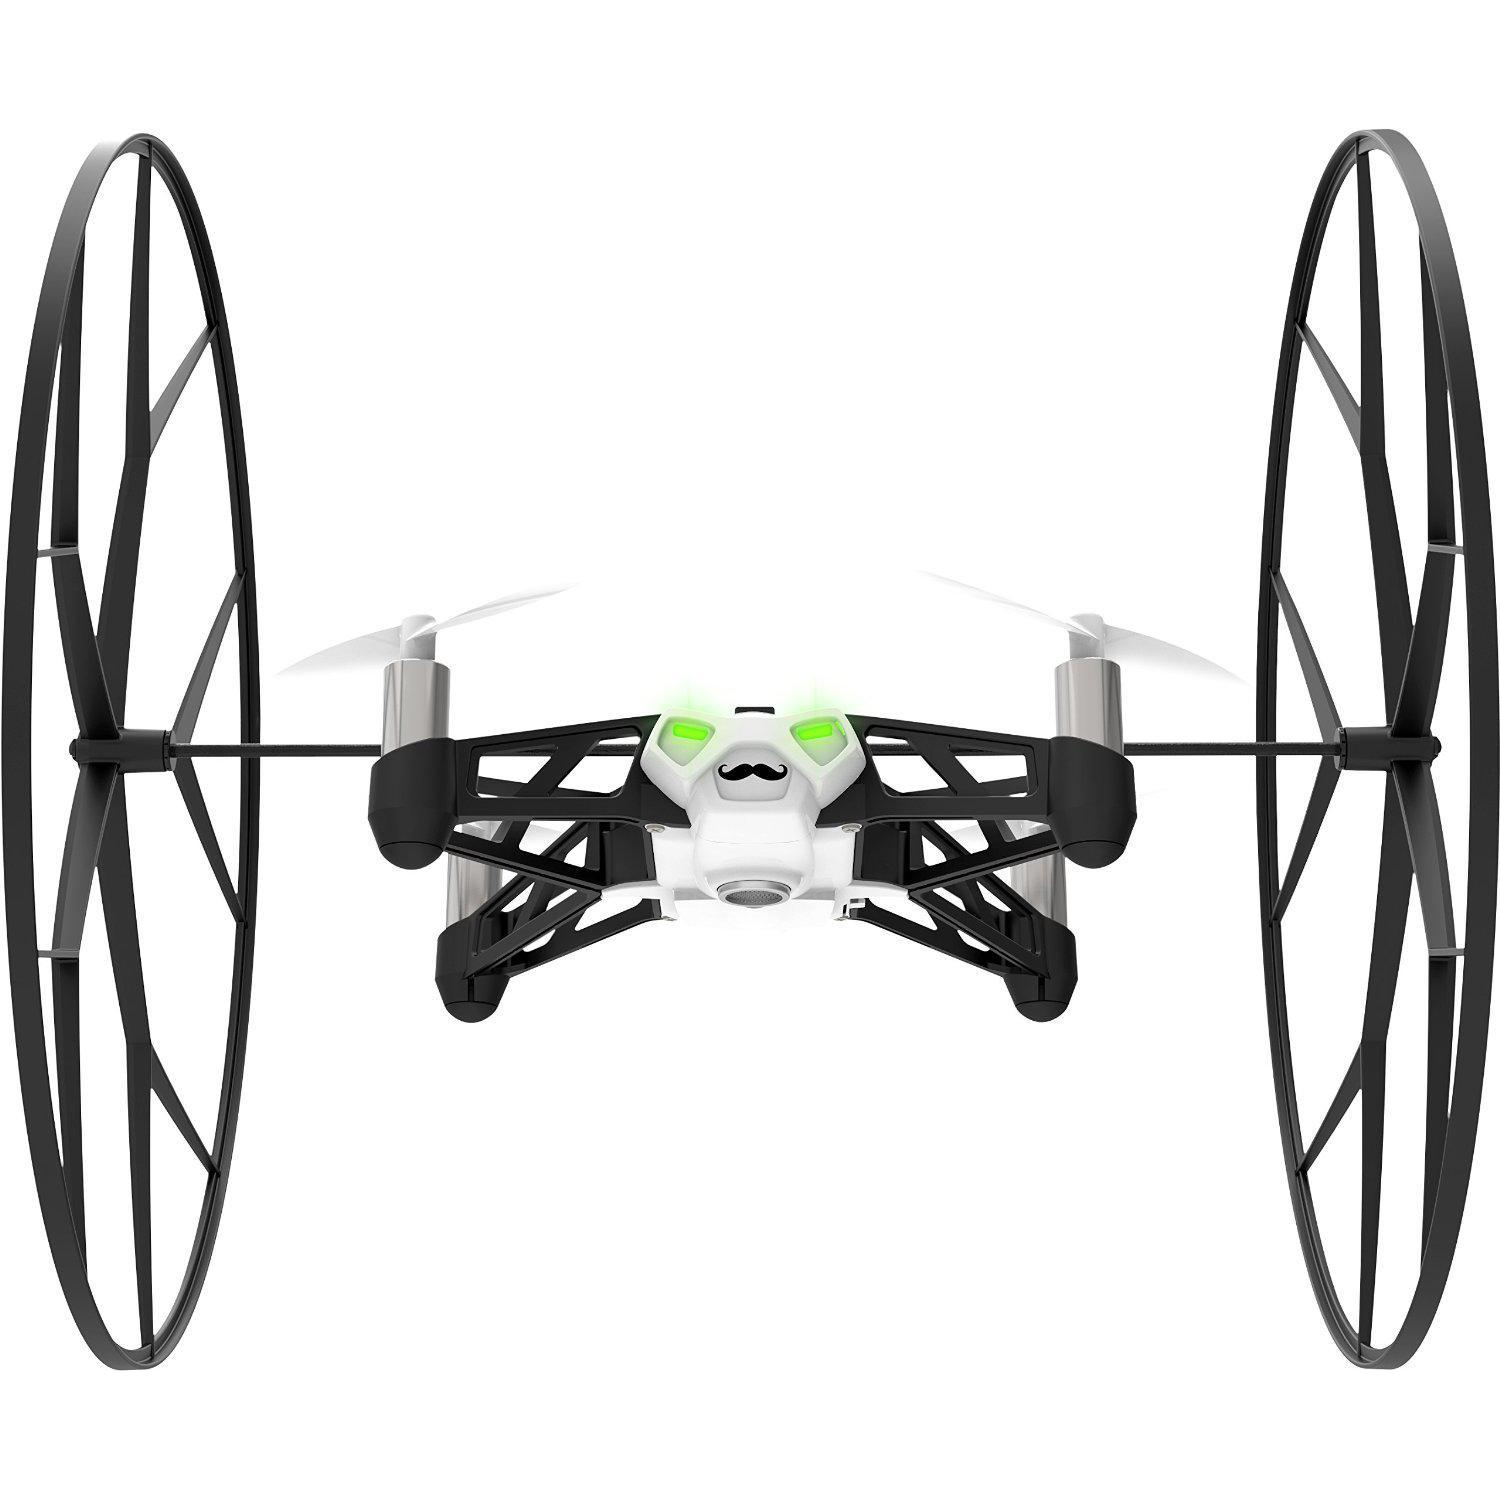 Drone PARROT Rolling Spider - Blanc